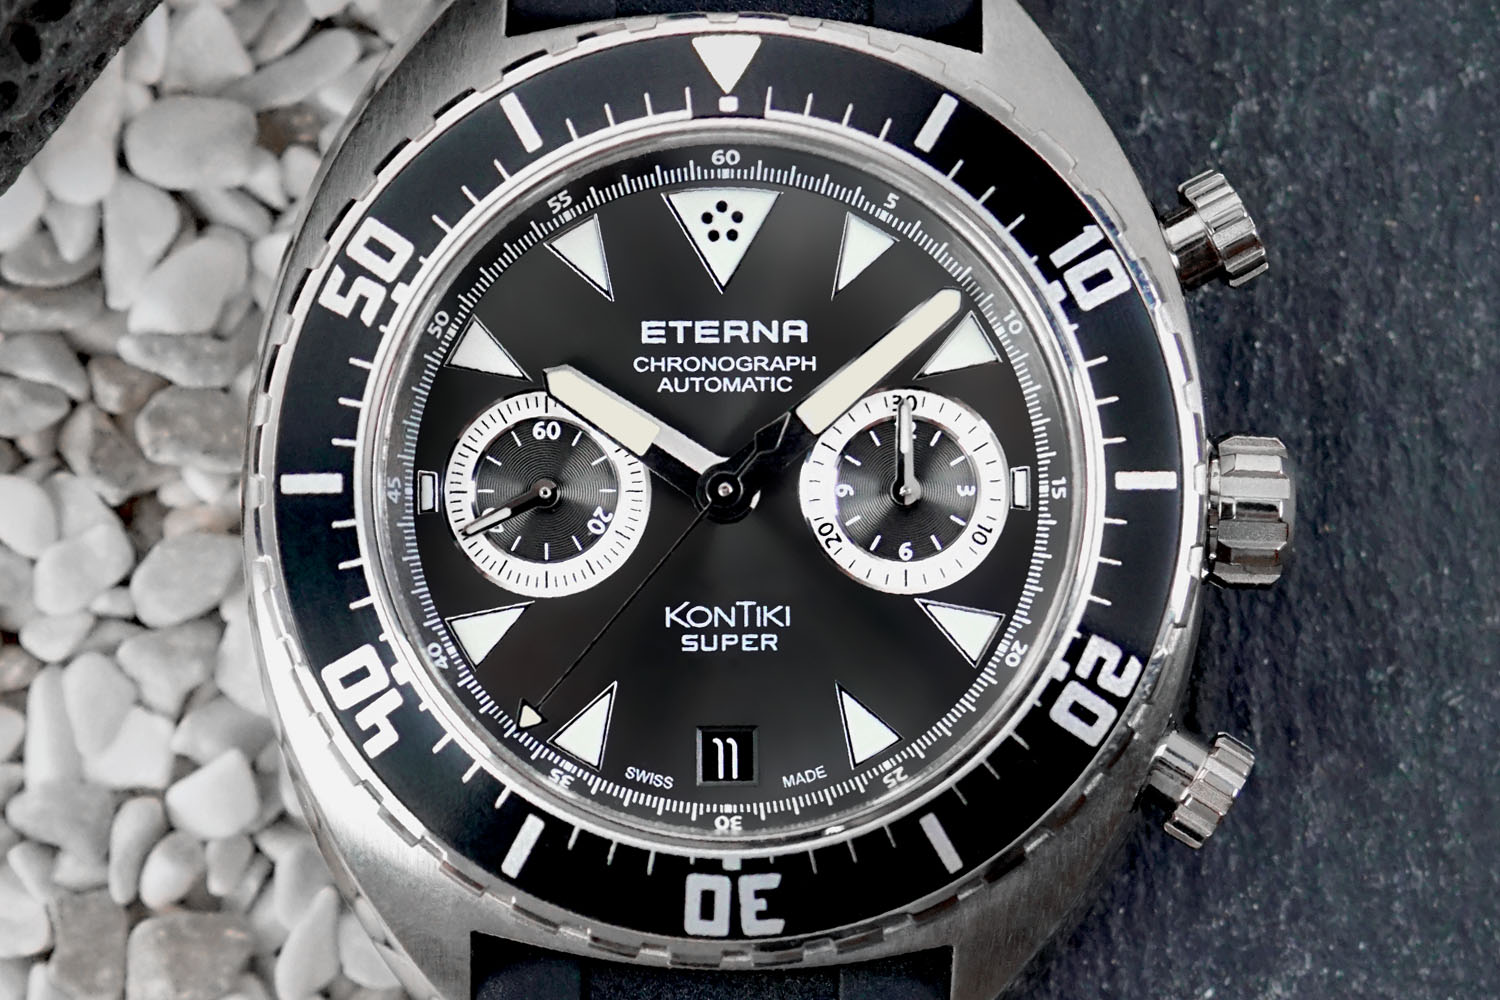 Eterna Super KonTiki Chronograph Flyback In-house movement - Baselworld 2016 - 2